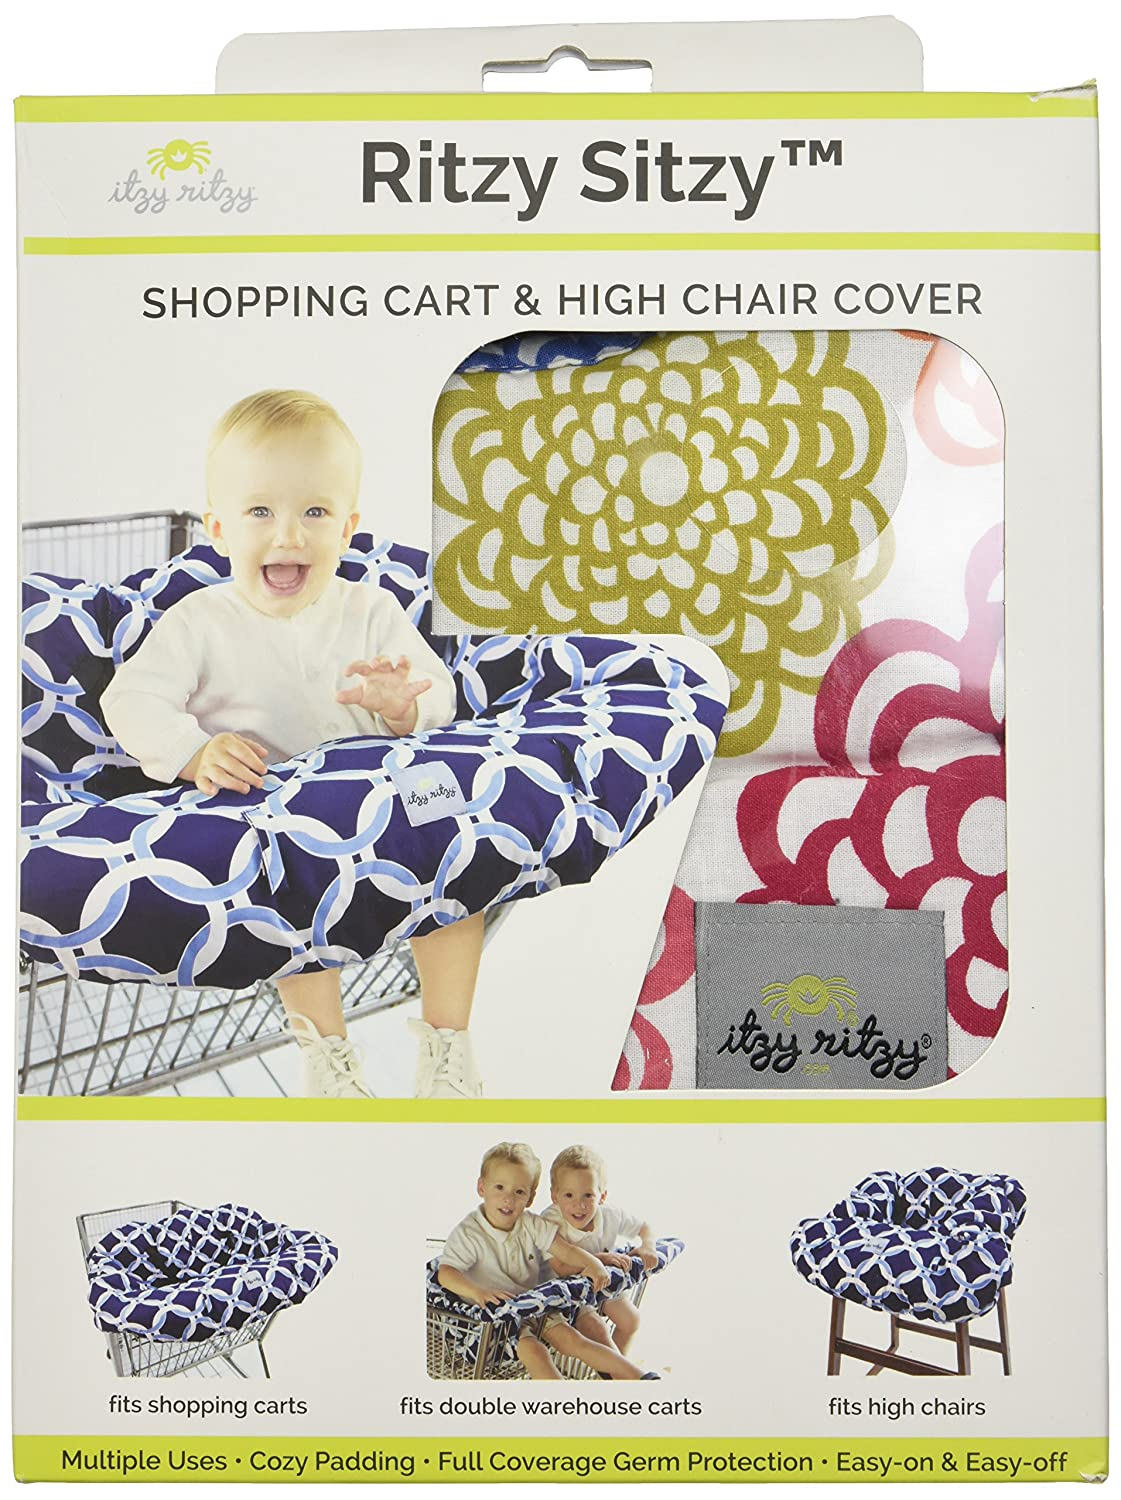 Avocado Damask Itzy Ritzy Shopping Cart and High Chair Cover Featuring Padding Toy Loops For Use in Shopping Carts and High Chairs Pockets and Safety Belts